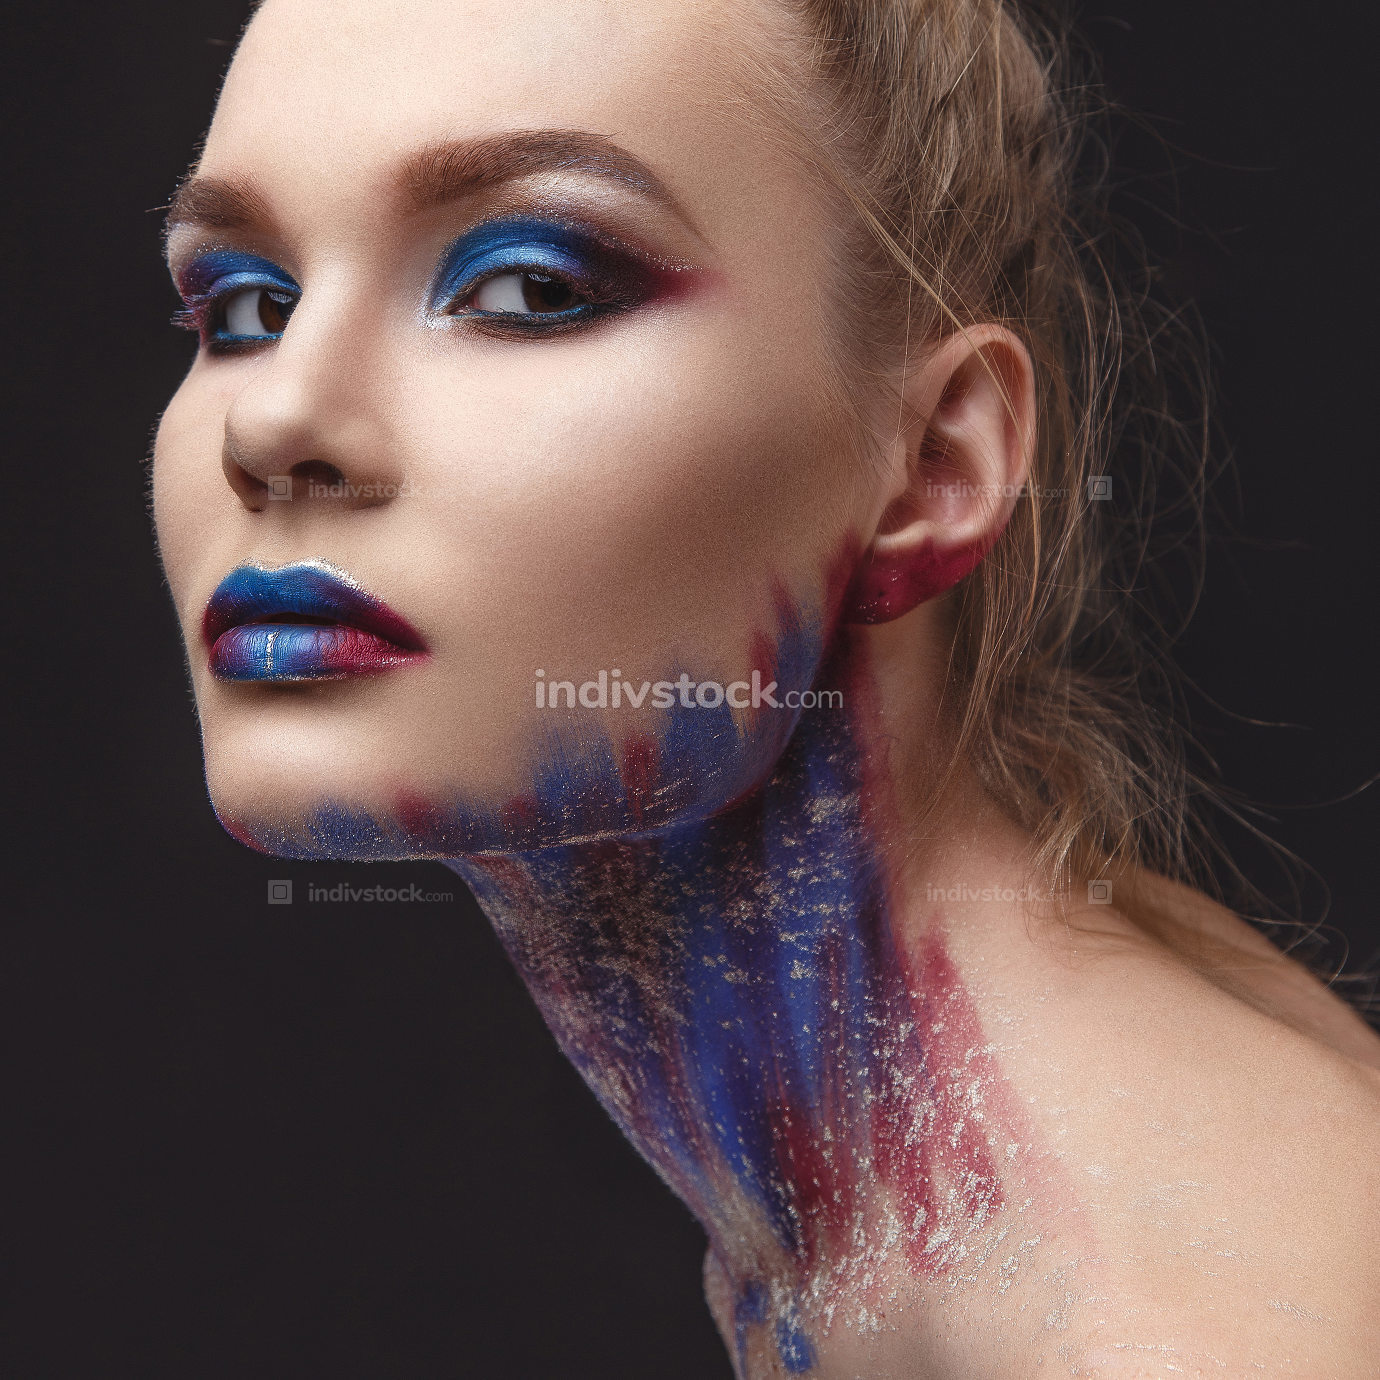 Portrait of beautiful girl with blue tones makeup